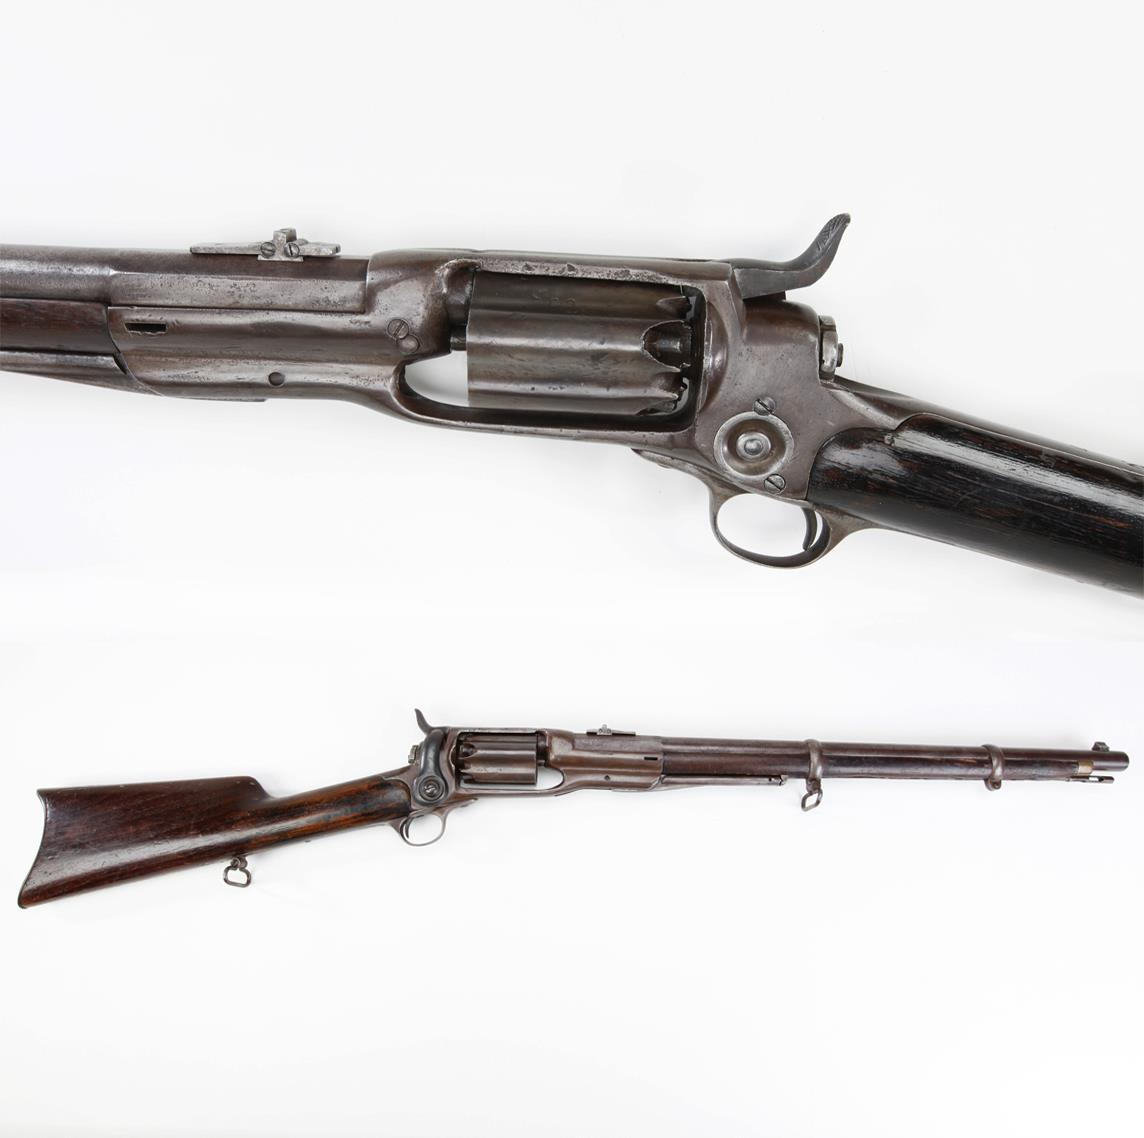 Gun of the Day: Colt Revolving Carbine